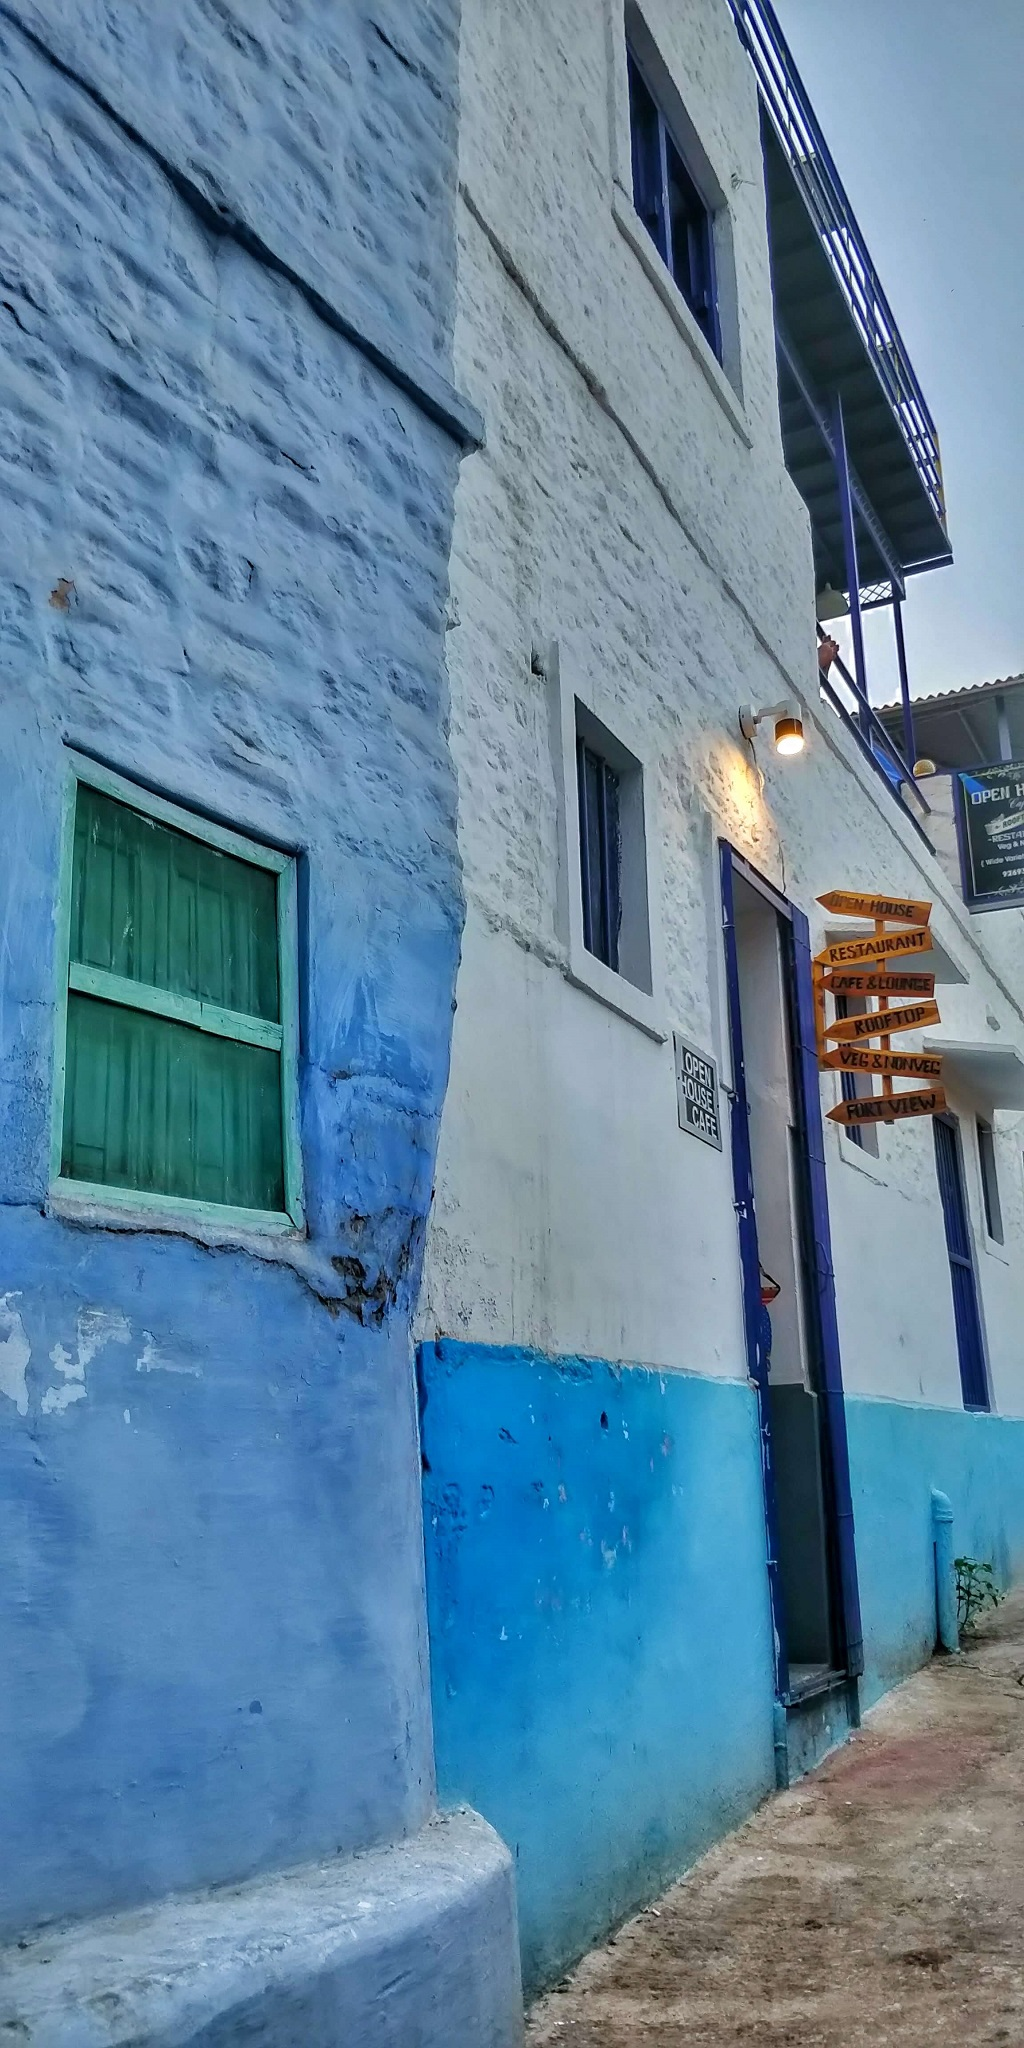 Walls of buildings painted in different shades of blue - Jodhpur blue city